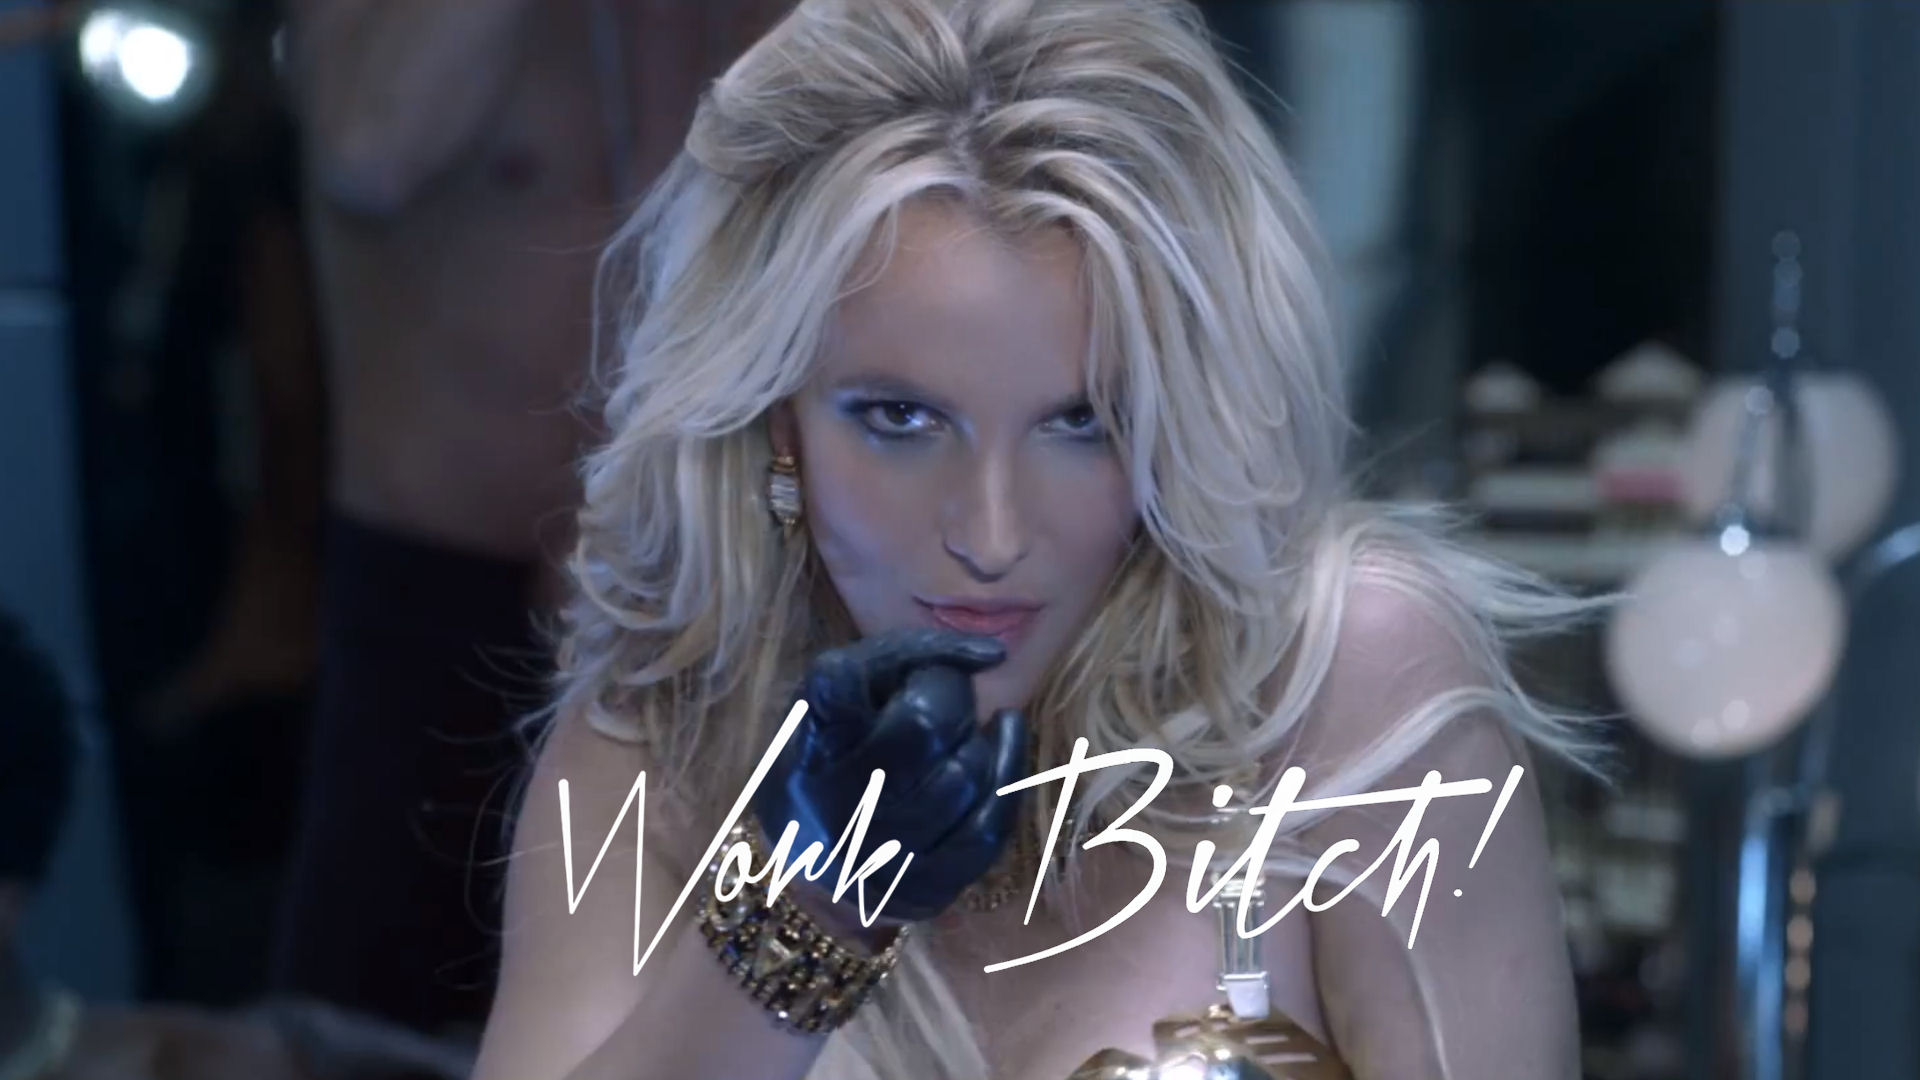 Britney spears work bitch uncensored version